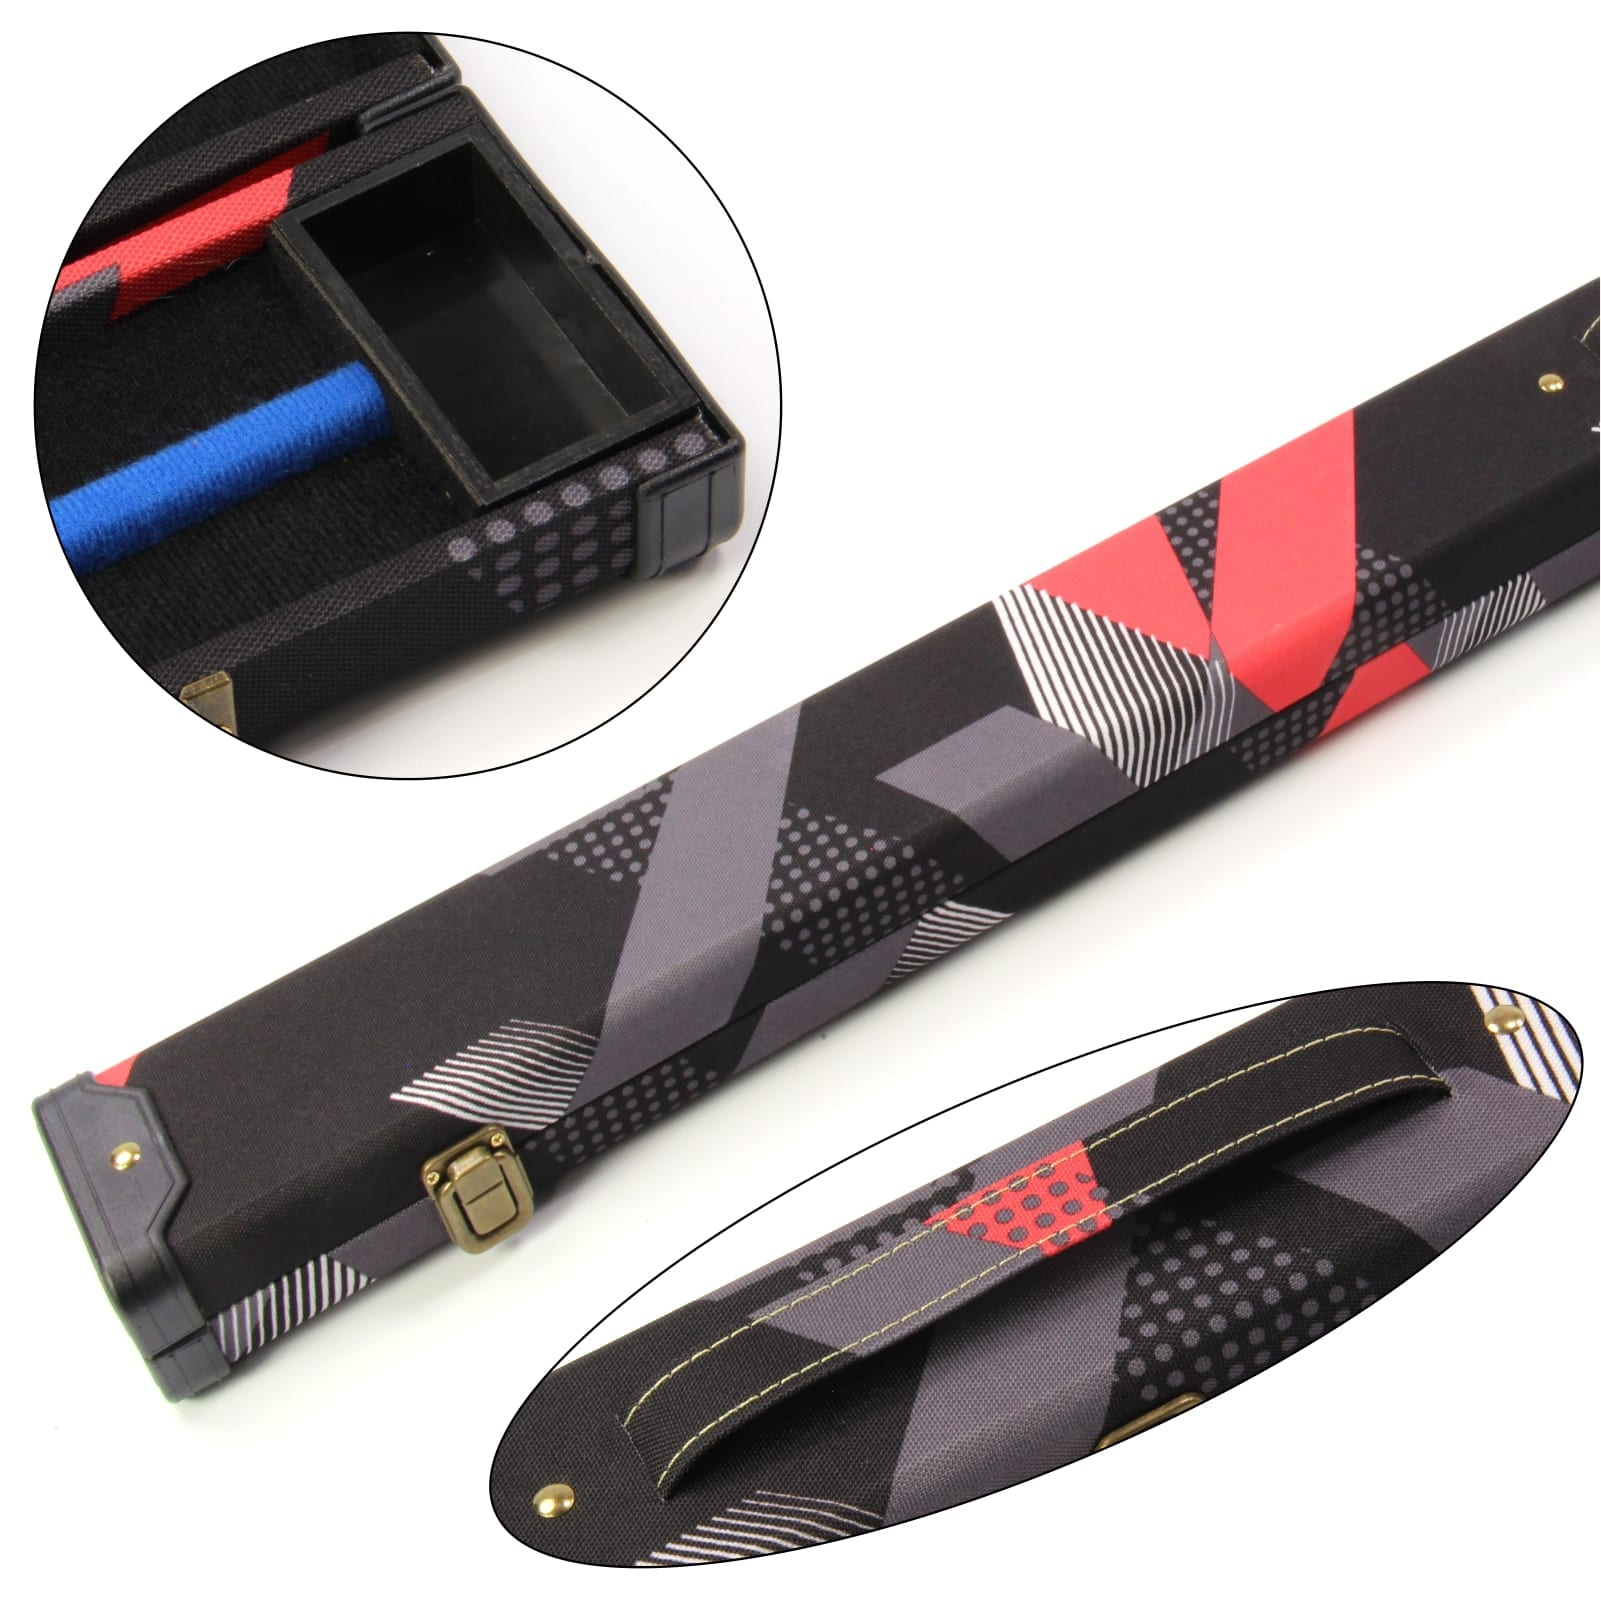 2 Cue 80s RED & BLACK 1PC Pool Snooker Cue Case - Holds 2 Cues